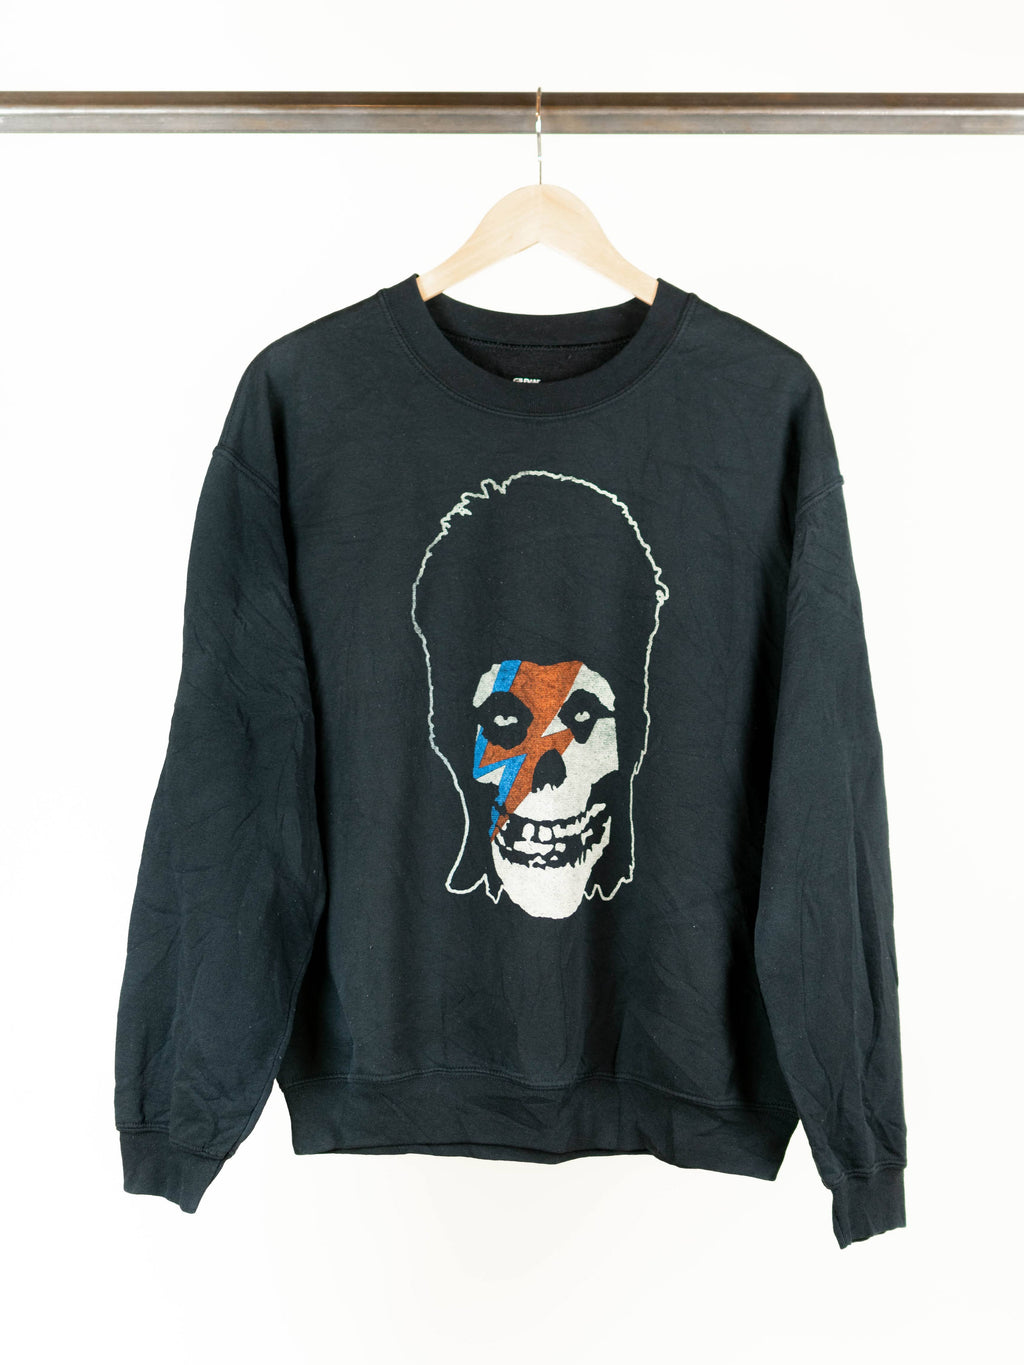 Rock Sweatshirts - Misfits - Bowie - Black